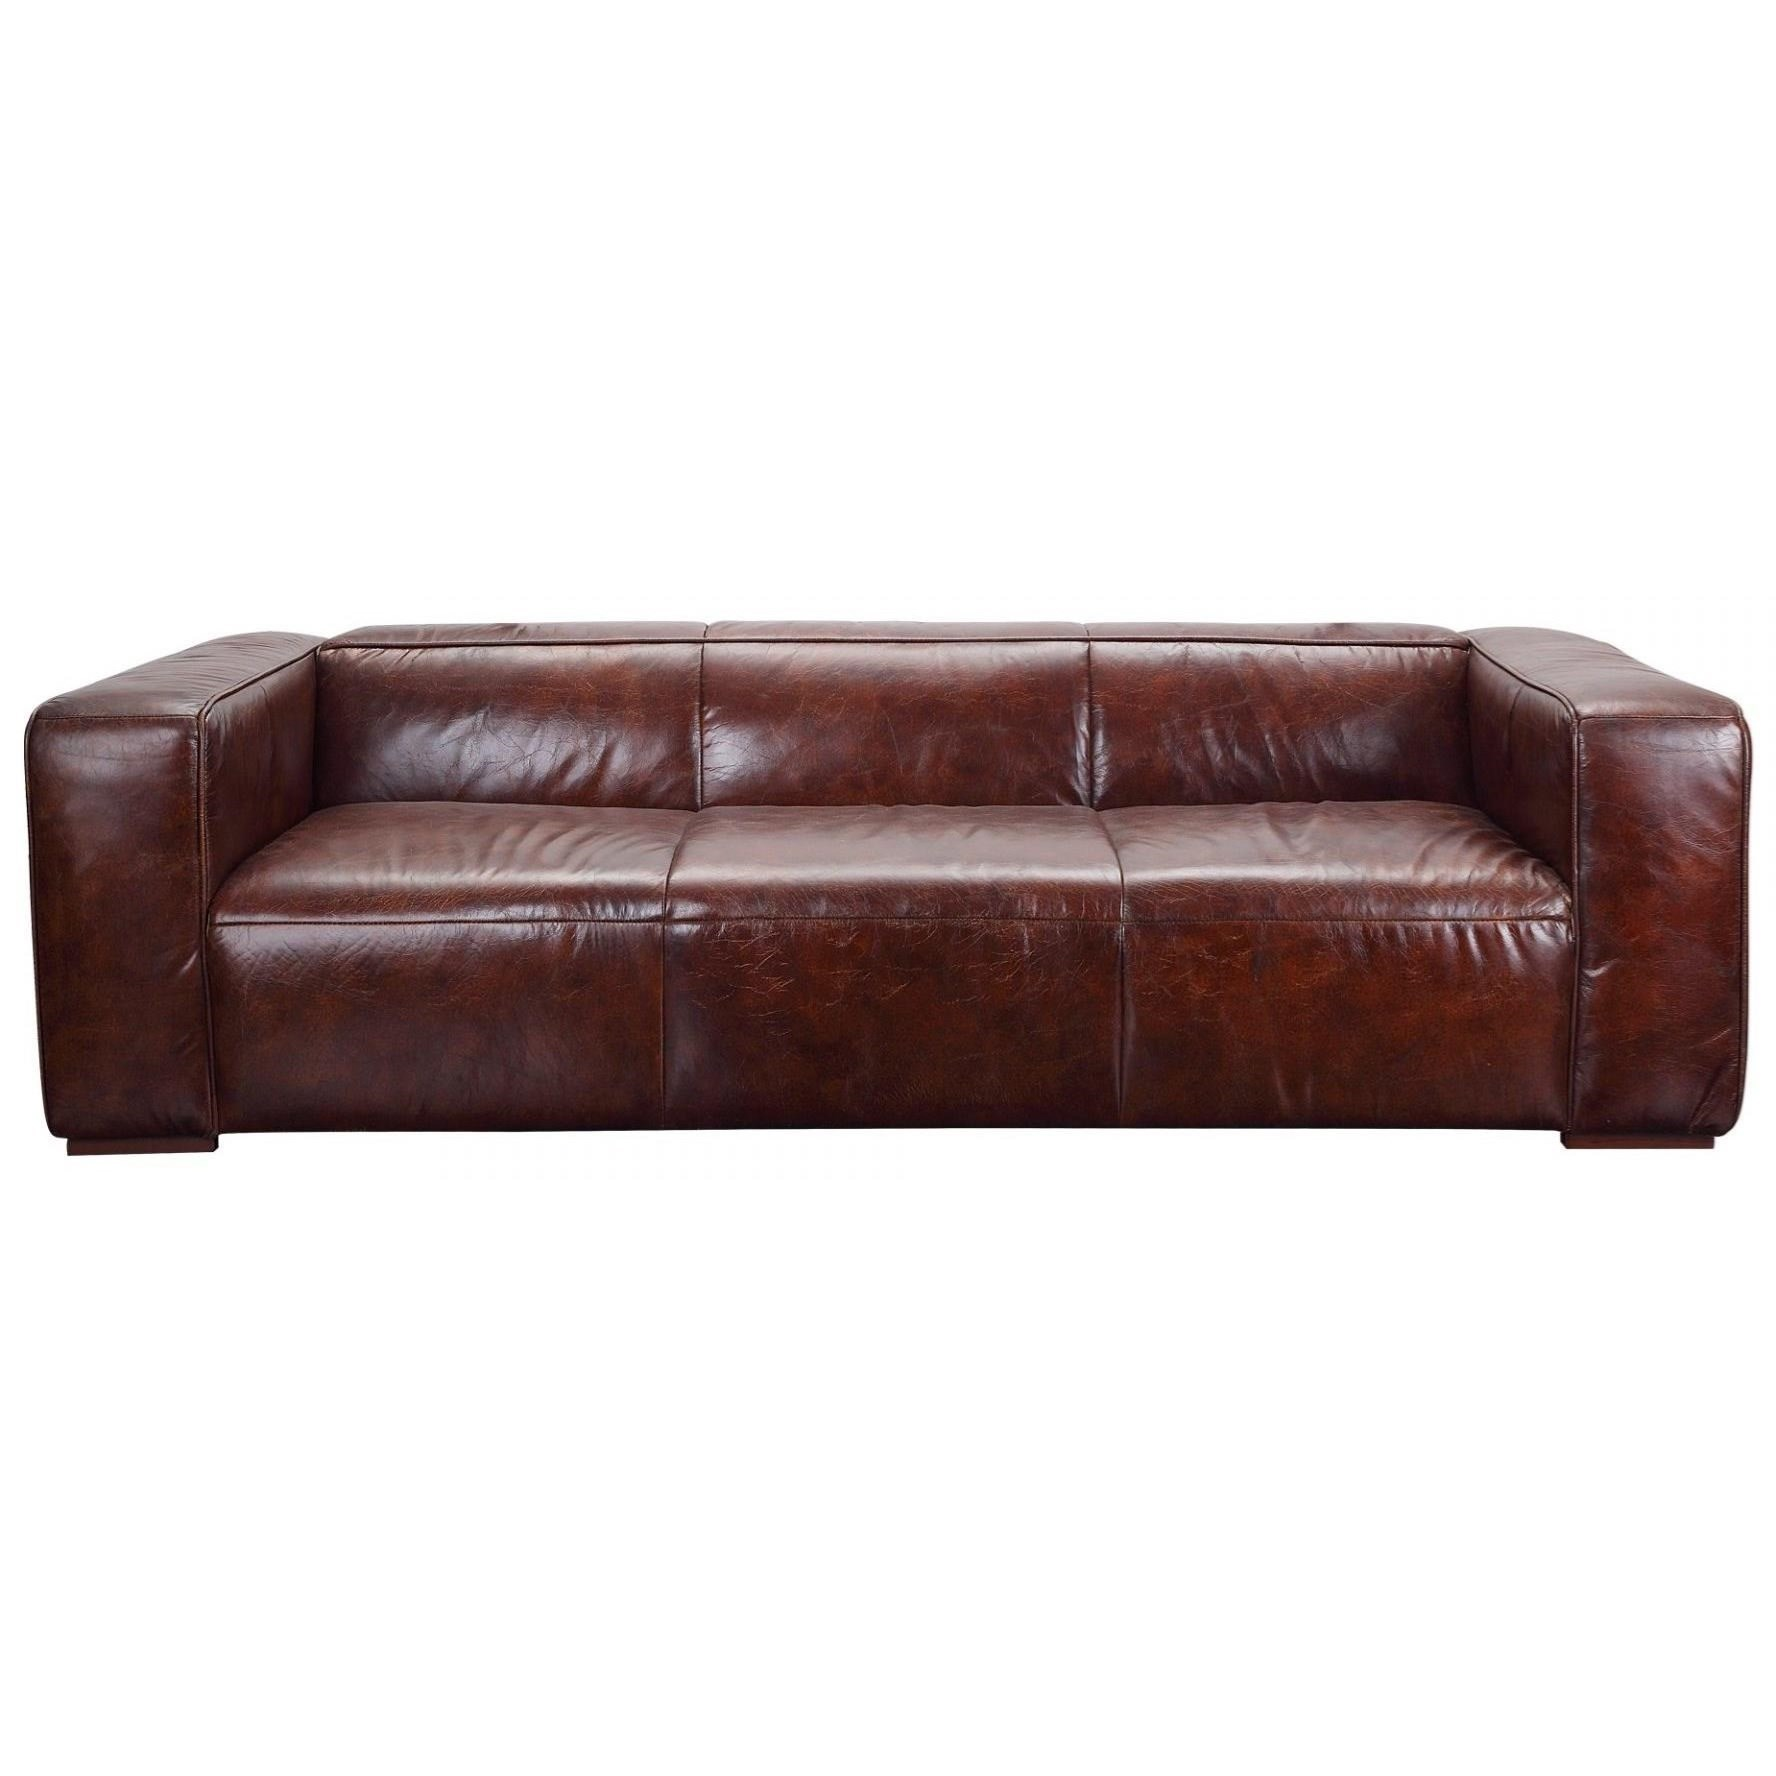 Bolton Top Grain Leather Sofa by Moe's Home Collection at Stoney Creek Furniture